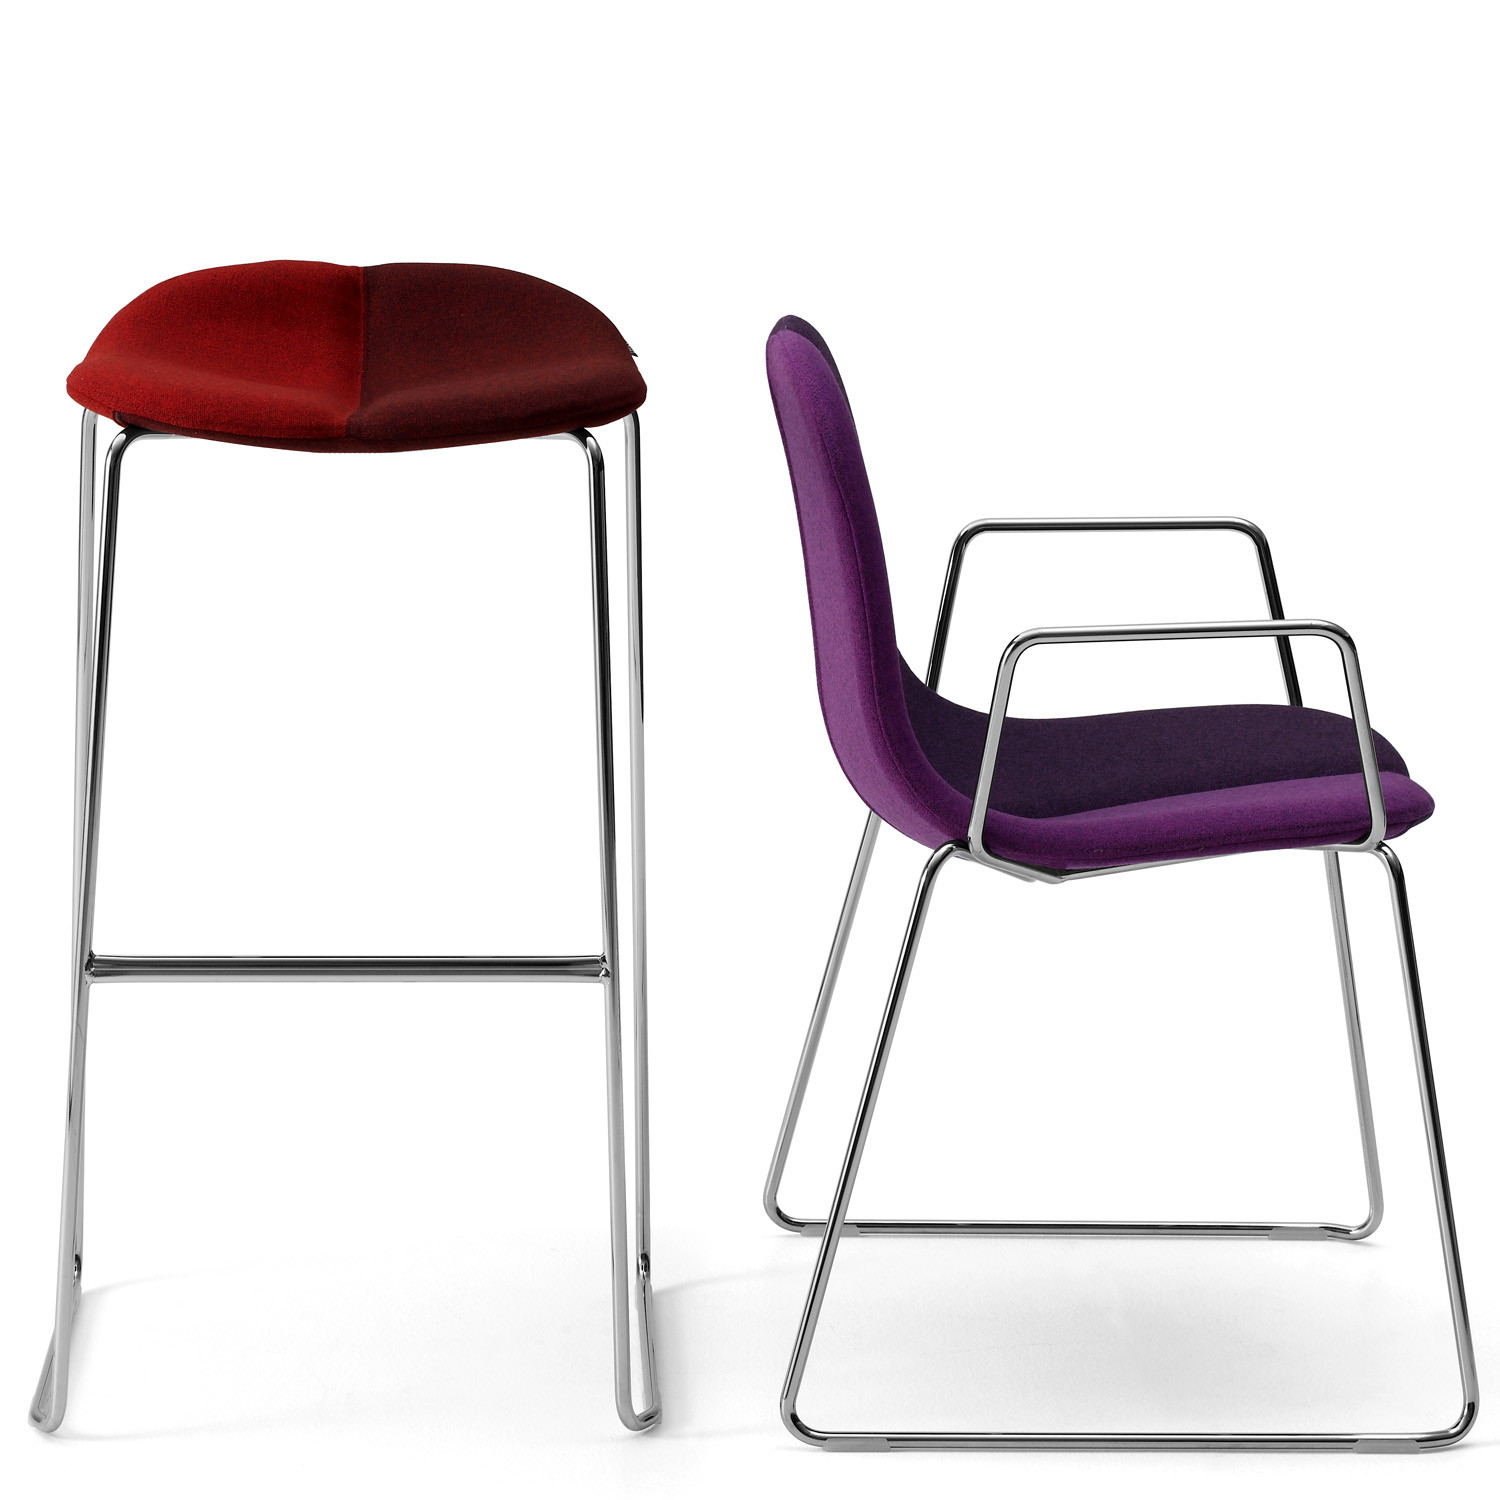 Duo Chair & Stool